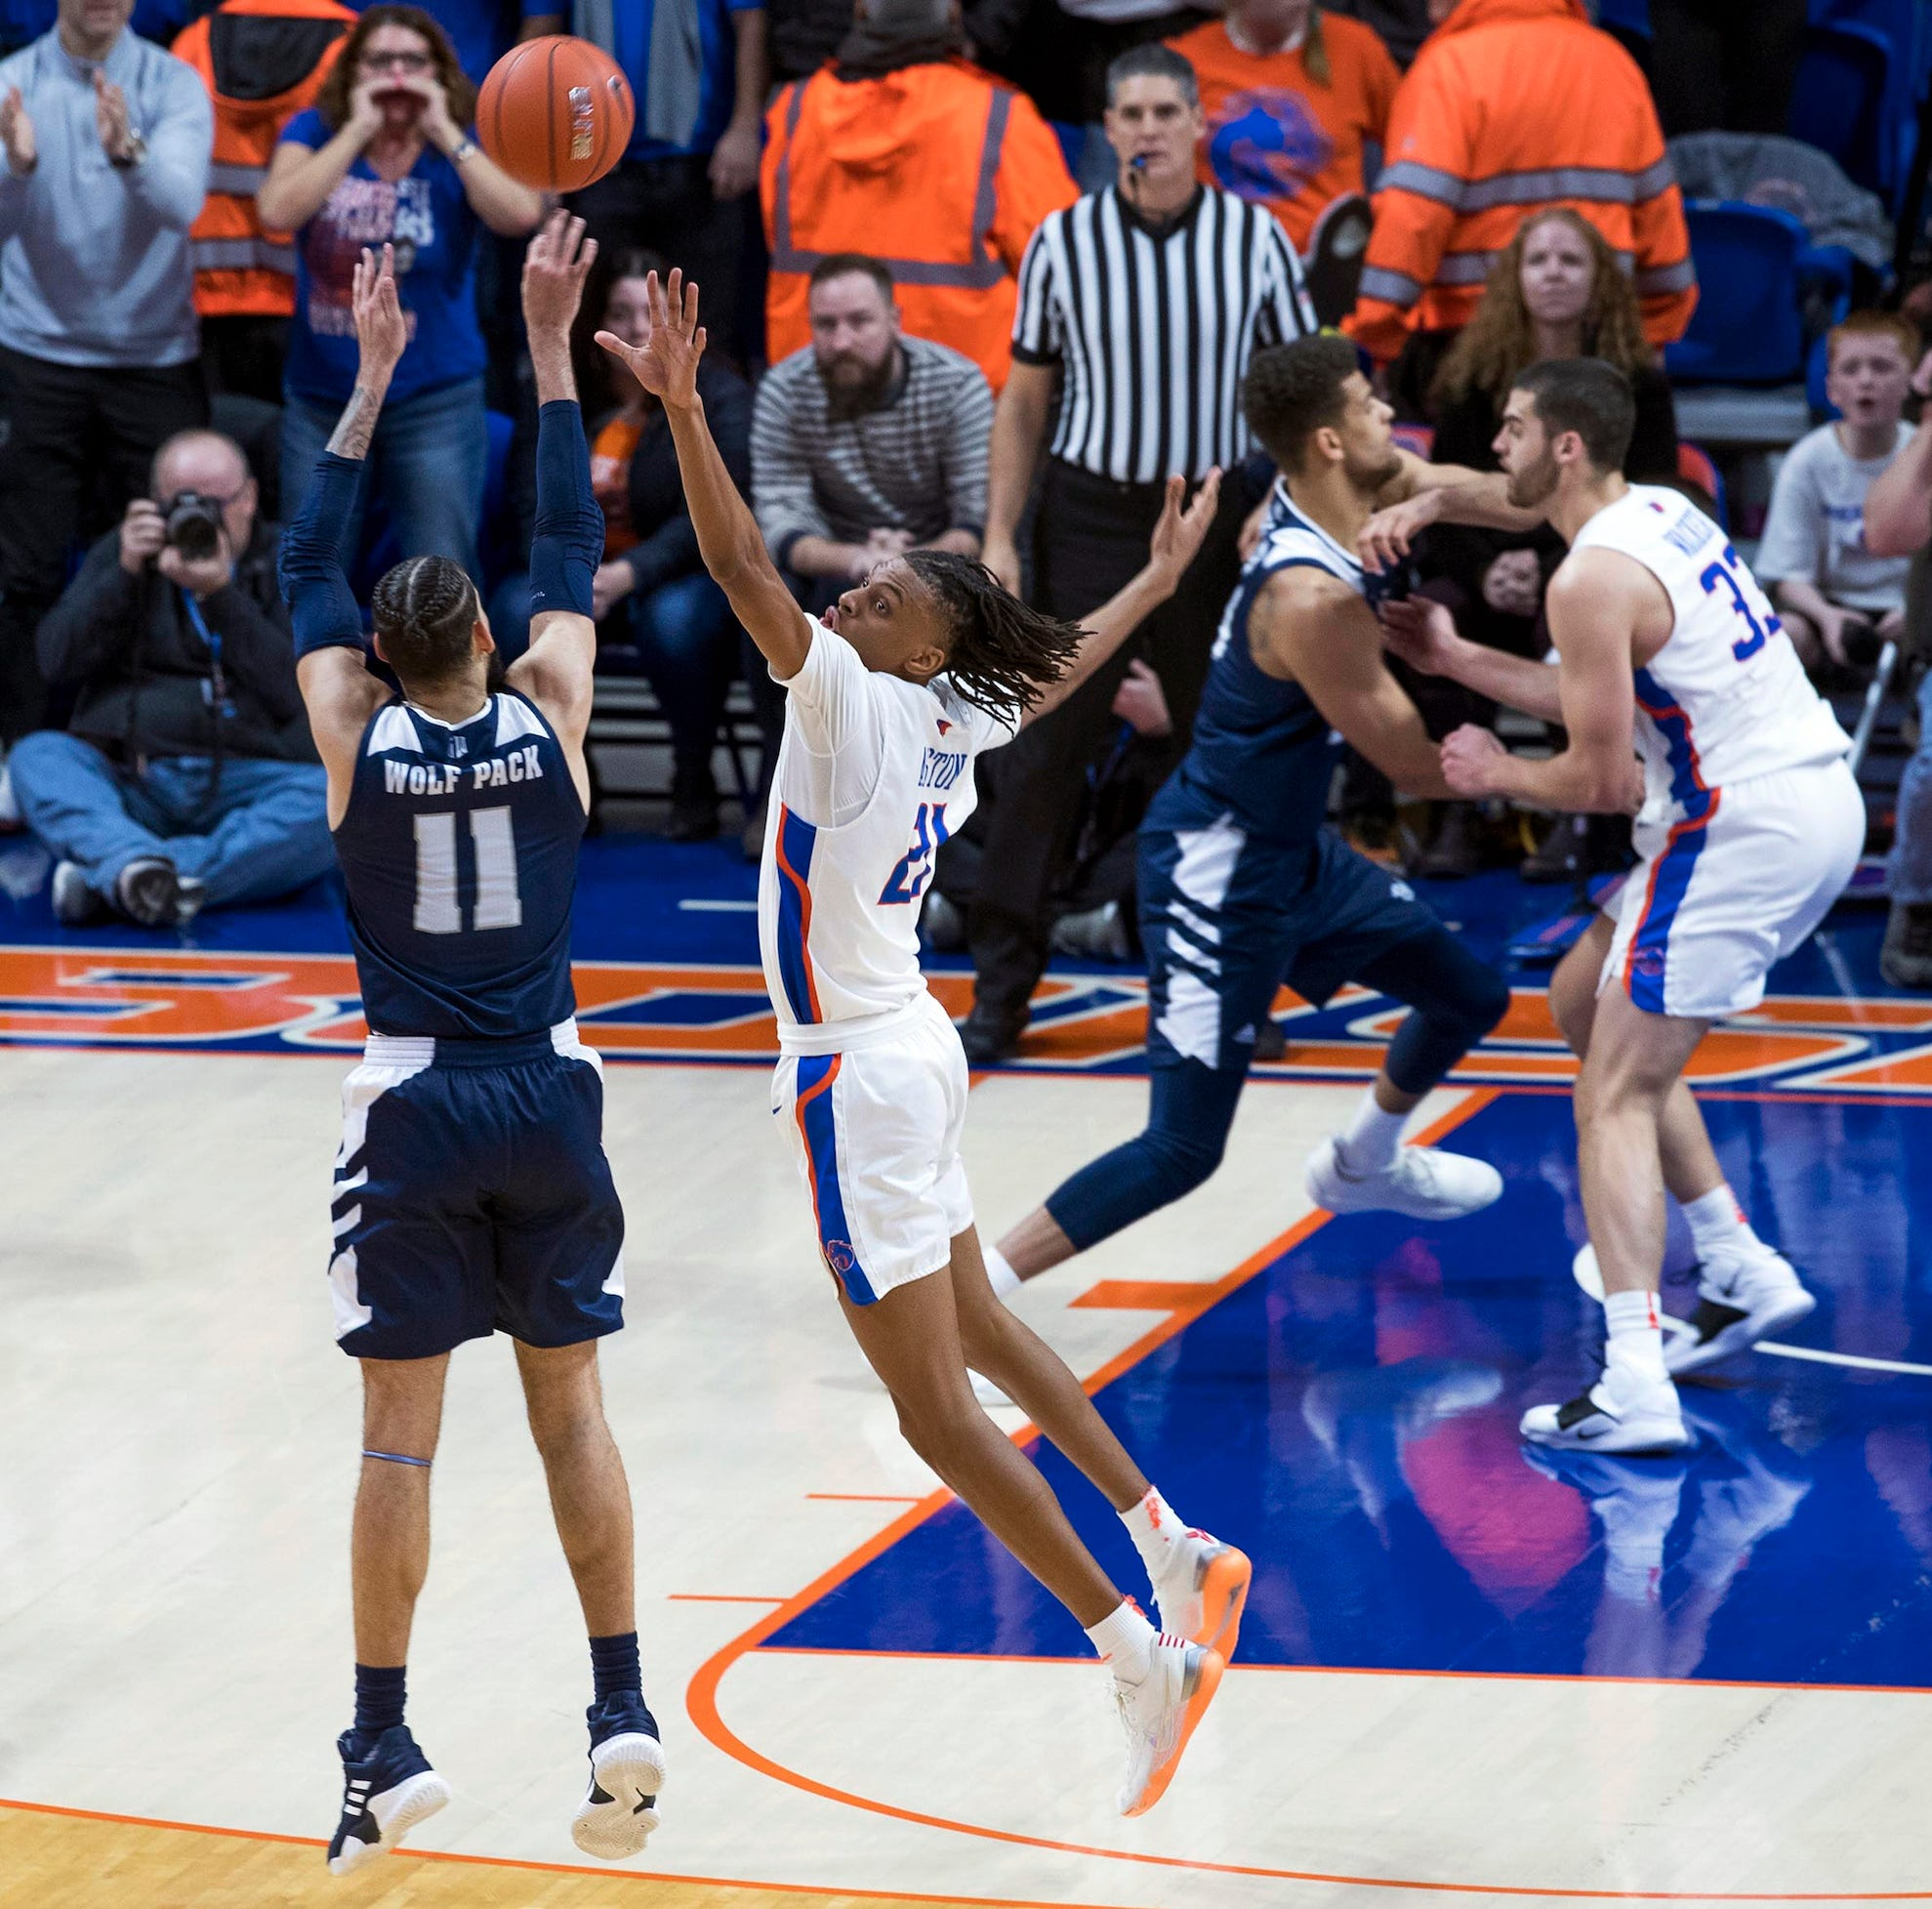 Broncos busted: Wolf Pack wins thriller over Boise State on late 3-pointer